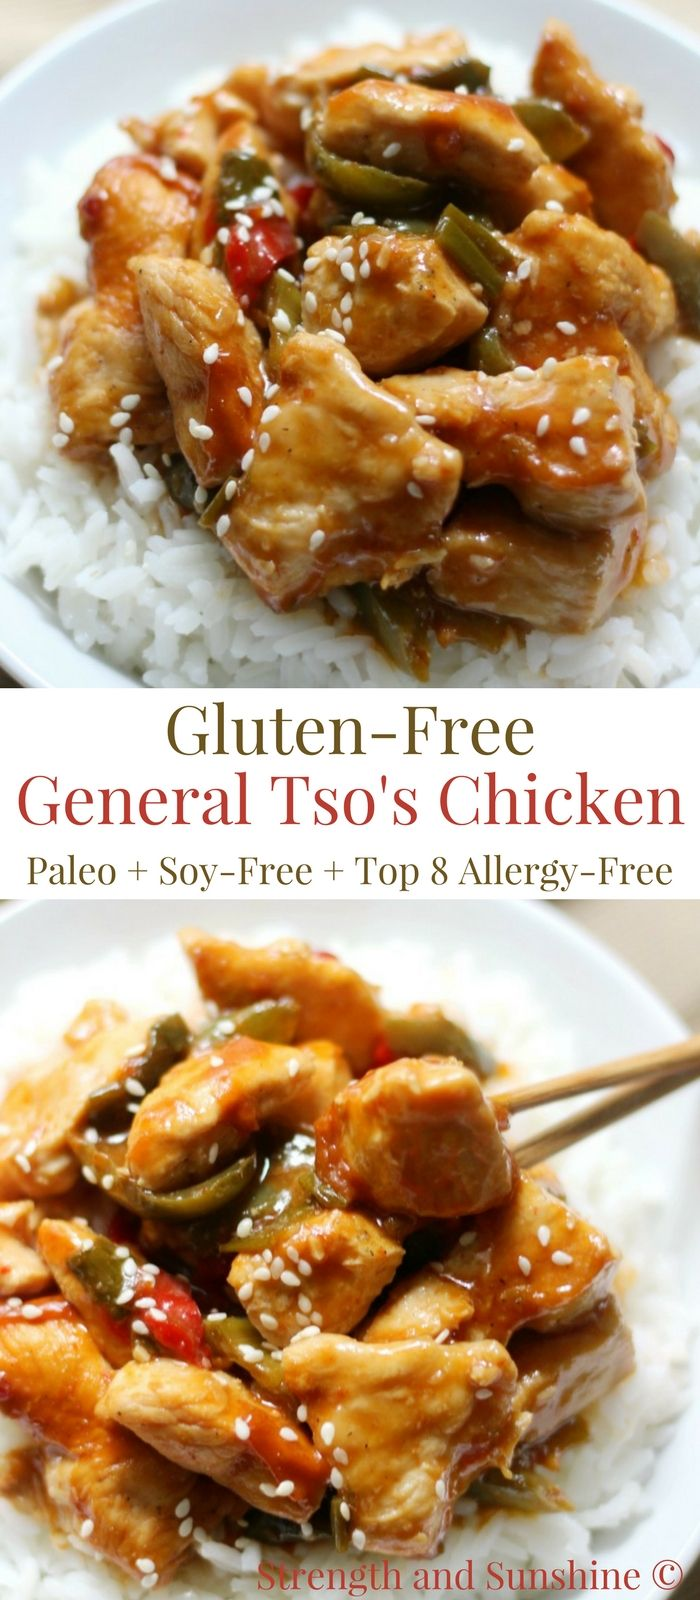 Gluten-Free General Tso's Chicken (Soy-Free, Paleo, Top 8 Allergy-Free) | Strength and Sunshine @RebeccaGF666 A sweet and slightly spicy Chinese takeout favorite you can easily make right at home! This recipe for Gluten-Free General Tso's Chicken is soy-free, paleo, top-8 allergy-free, and can be whipped up for the dinner table in a flash! #generaltsoschicken #chickendinner #glutenfree #chinesetakeout #strengthandsunshine